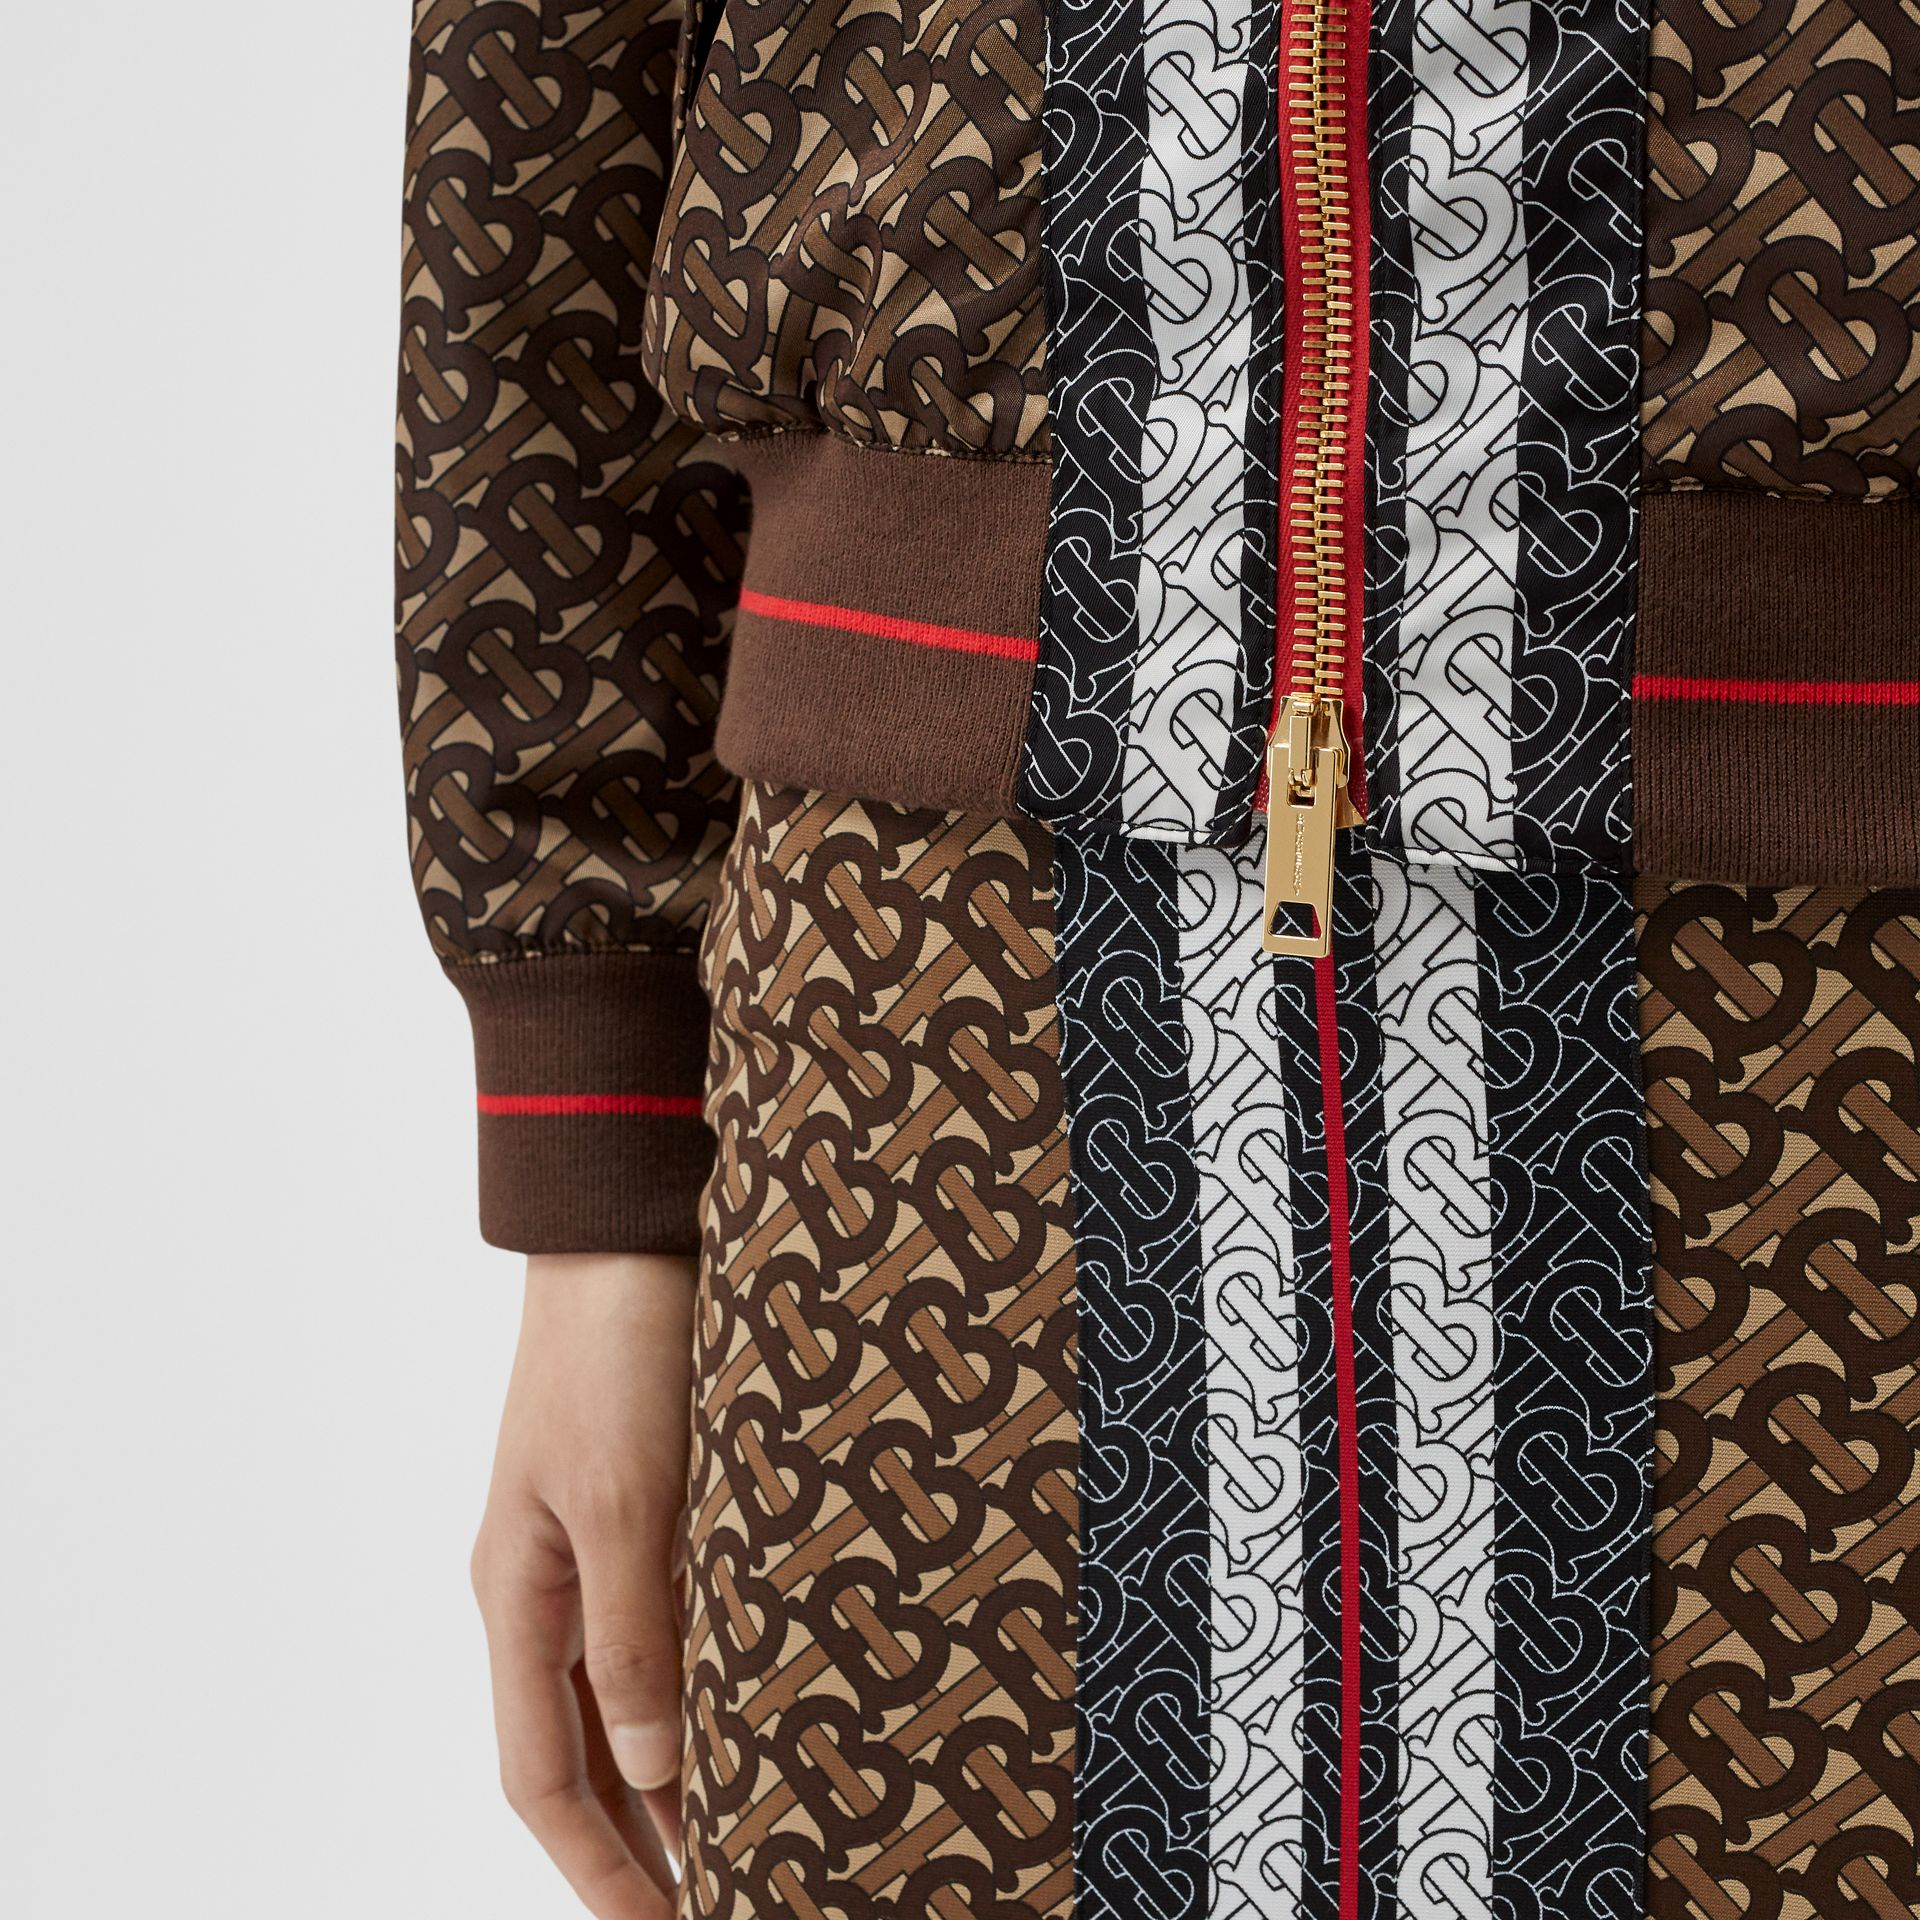 Monogram Stripe Print Nylon Bomber Jacket in Bridle Brown - Women | Burberry - gallery image 4